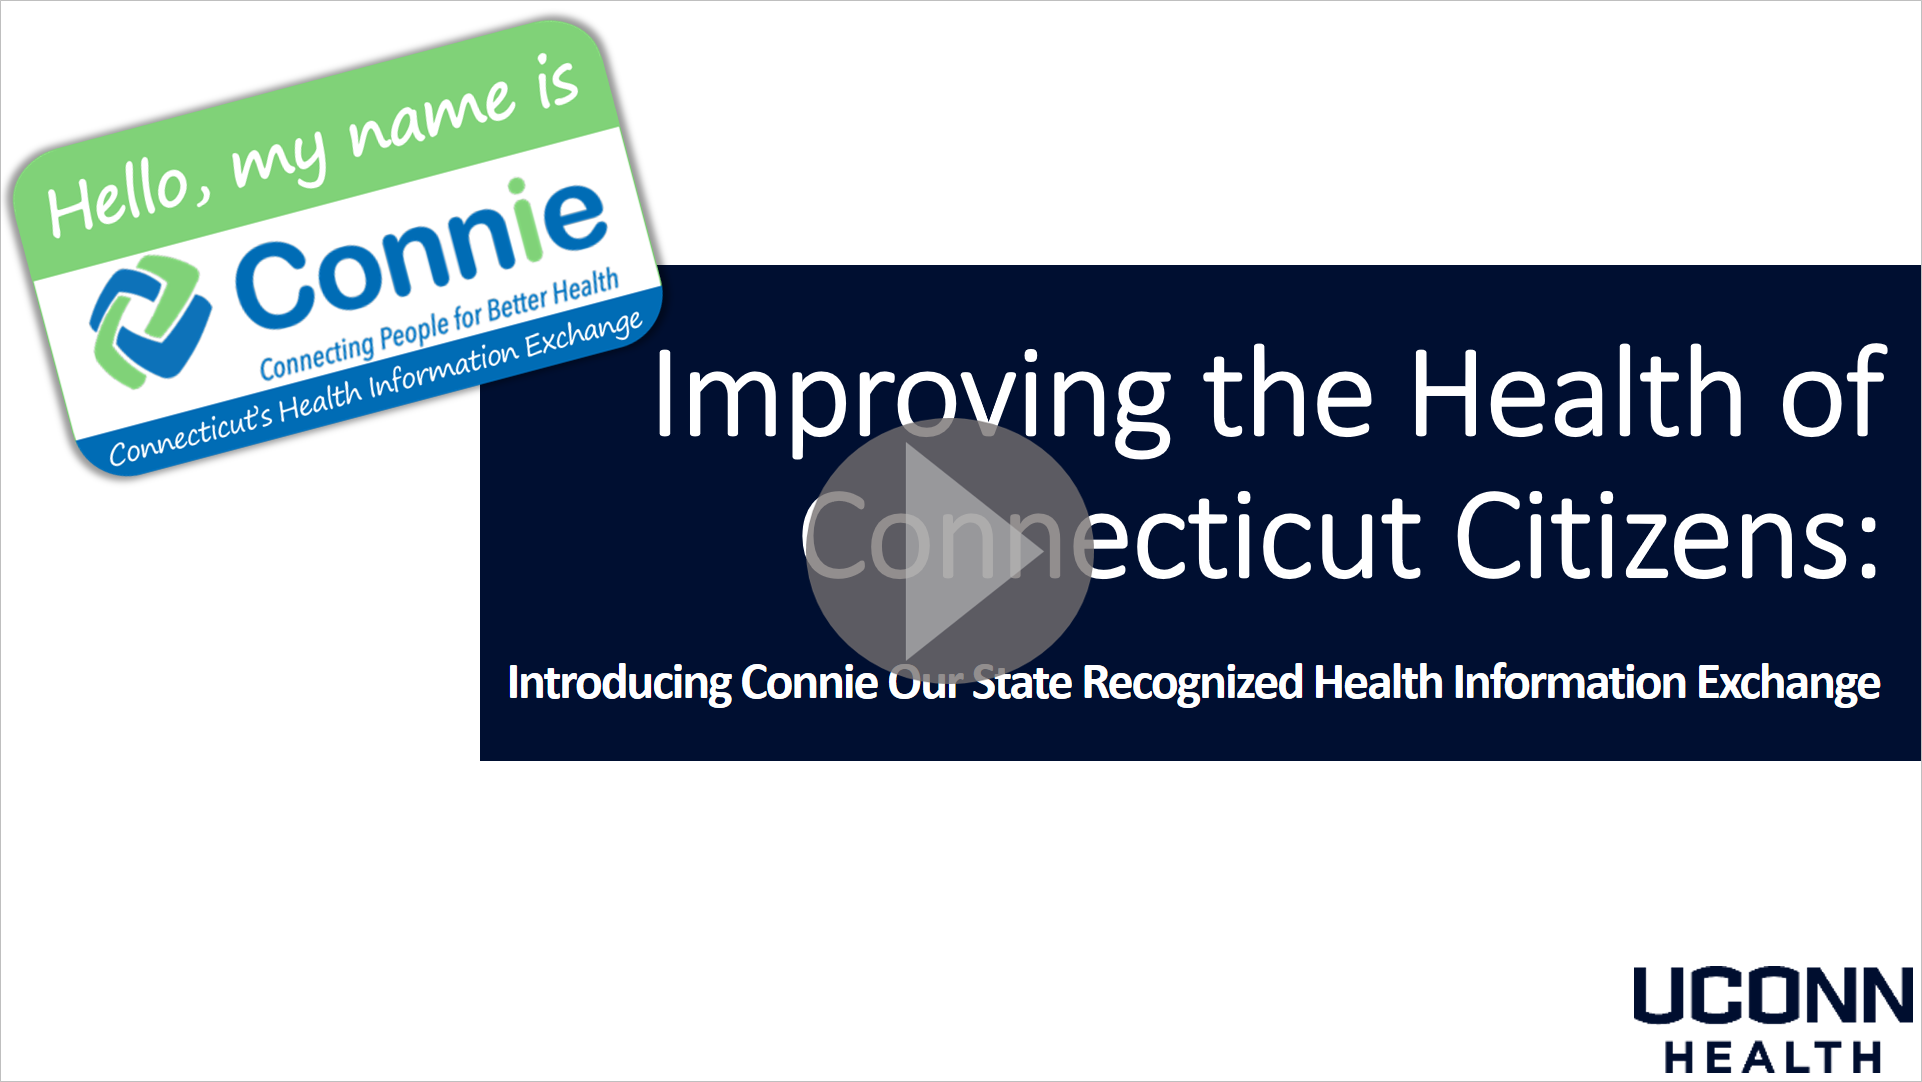 Introducing Connie Video Image Link